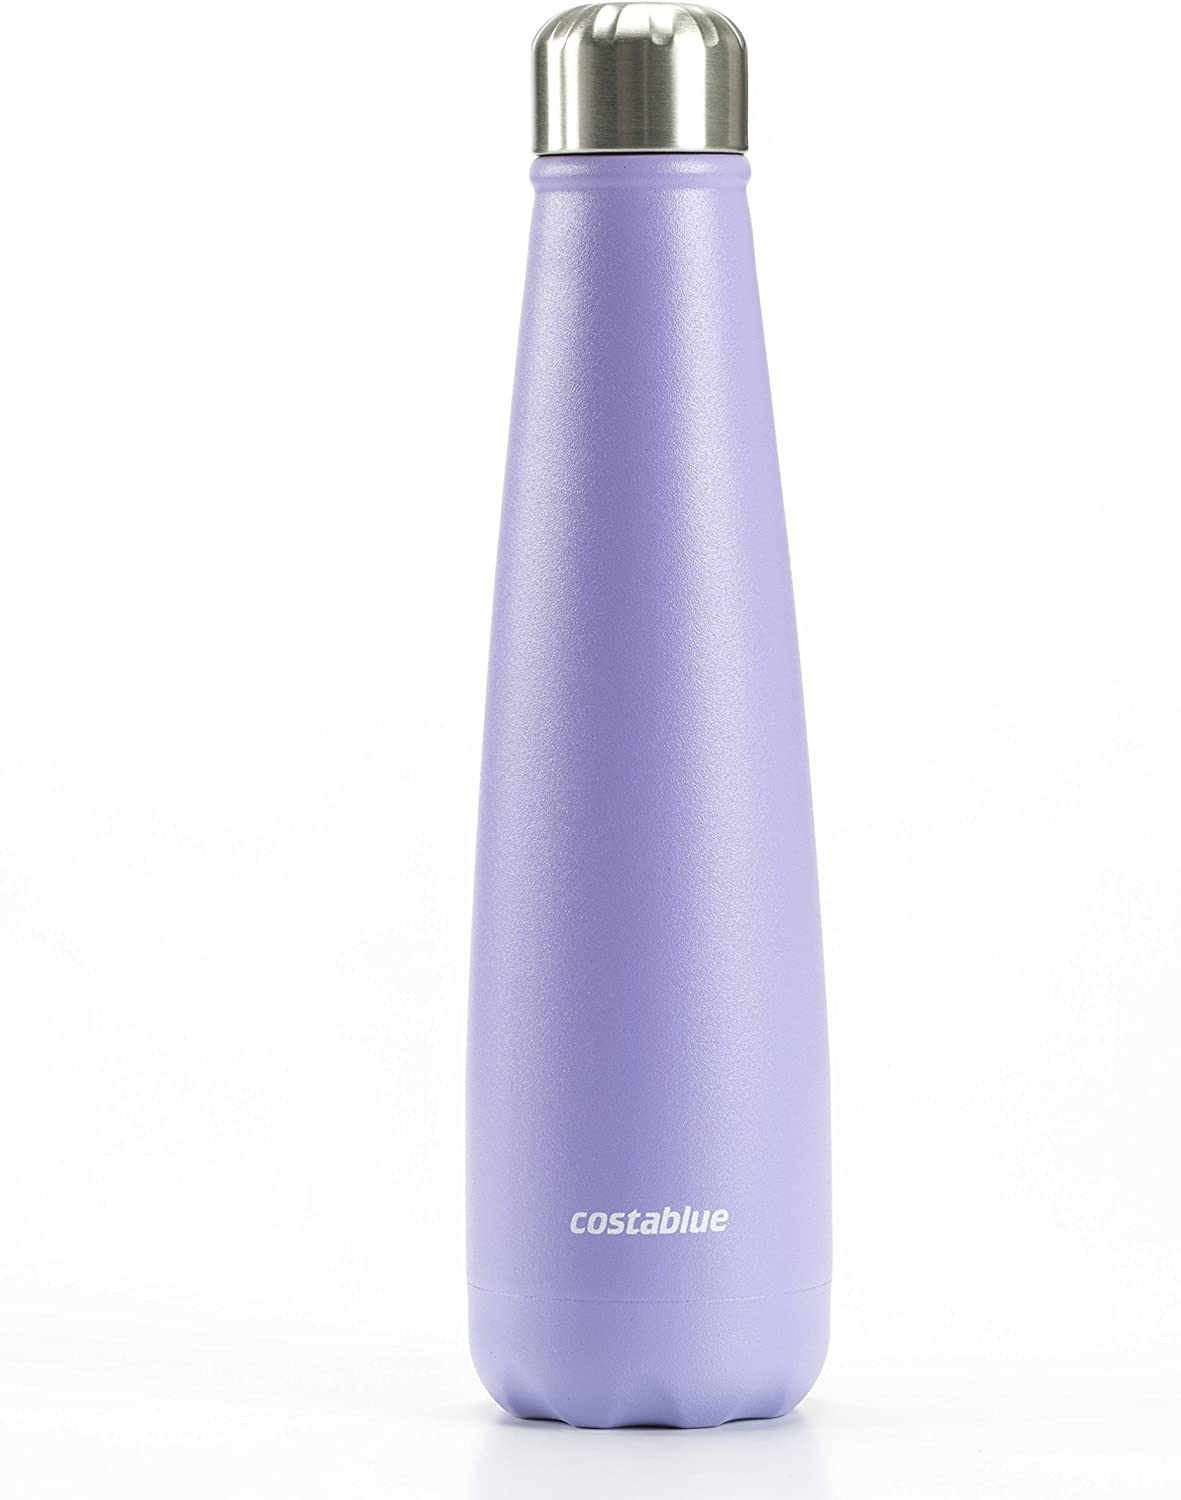 costablue - Santa Monica Collection Vacuum Insulated Double Wall Stainless Steel Bottle, 17 oz (500 ml), Leak Proof, no Sweating, Keep Your Drink hot or Cold, Powder Coating Finish, Grape